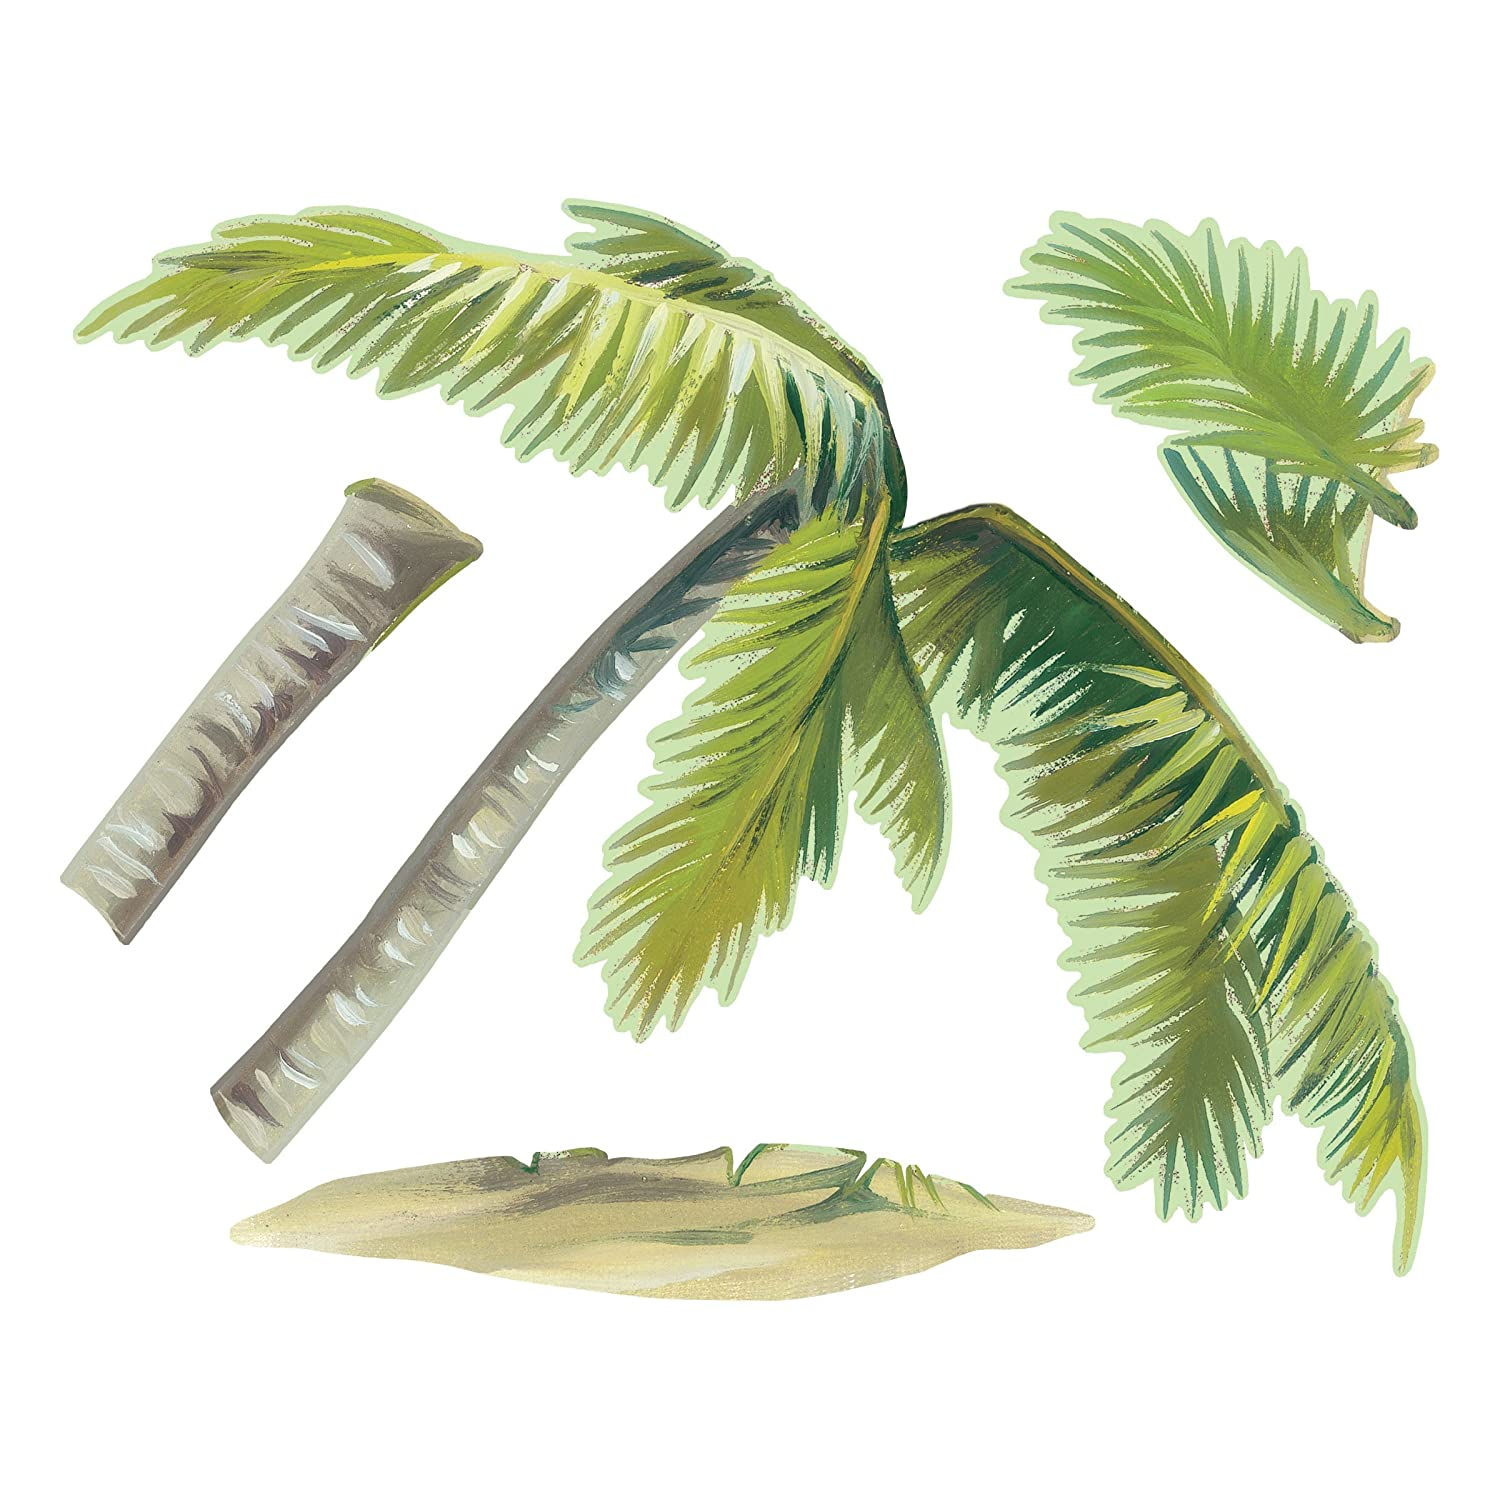 Elegant Amazon.com: Wallies Wall Decals, Breezy Palm Tree Wall Sticker: Home U0026  Kitchen Part 18